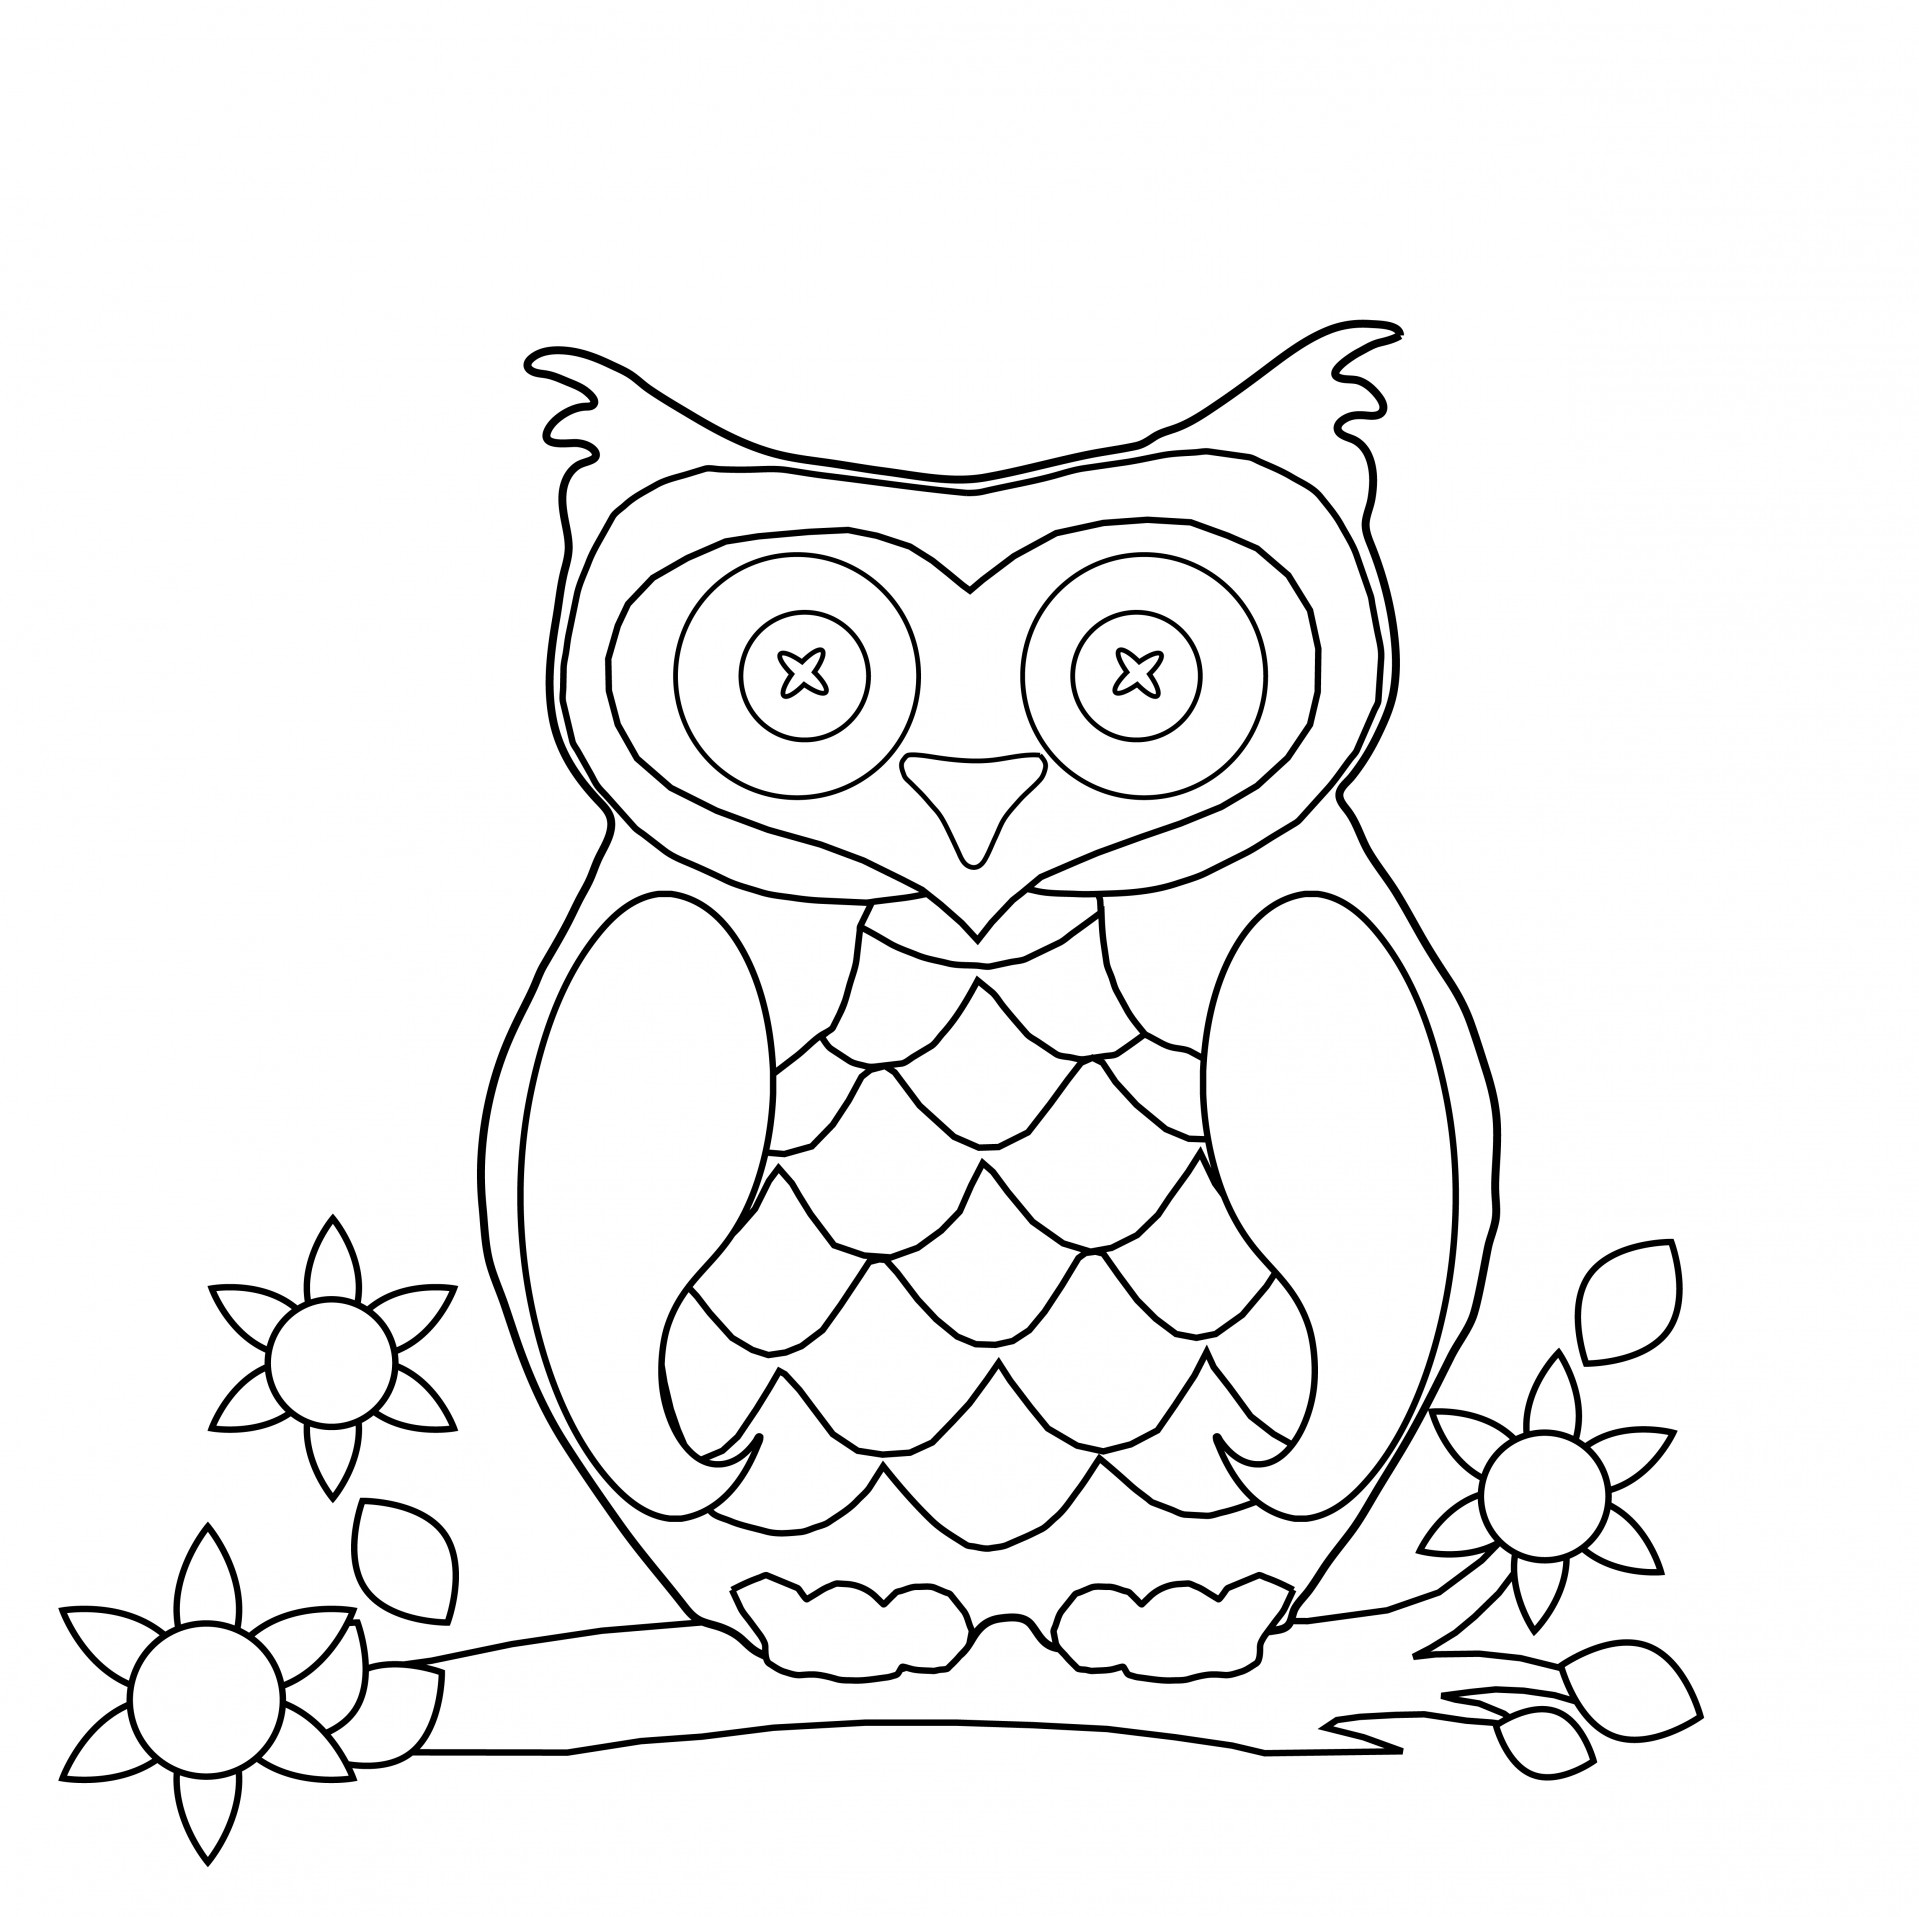 coloring pages printable for teenagers april coloring pages best coloring pages for kids pages printable teenagers coloring for